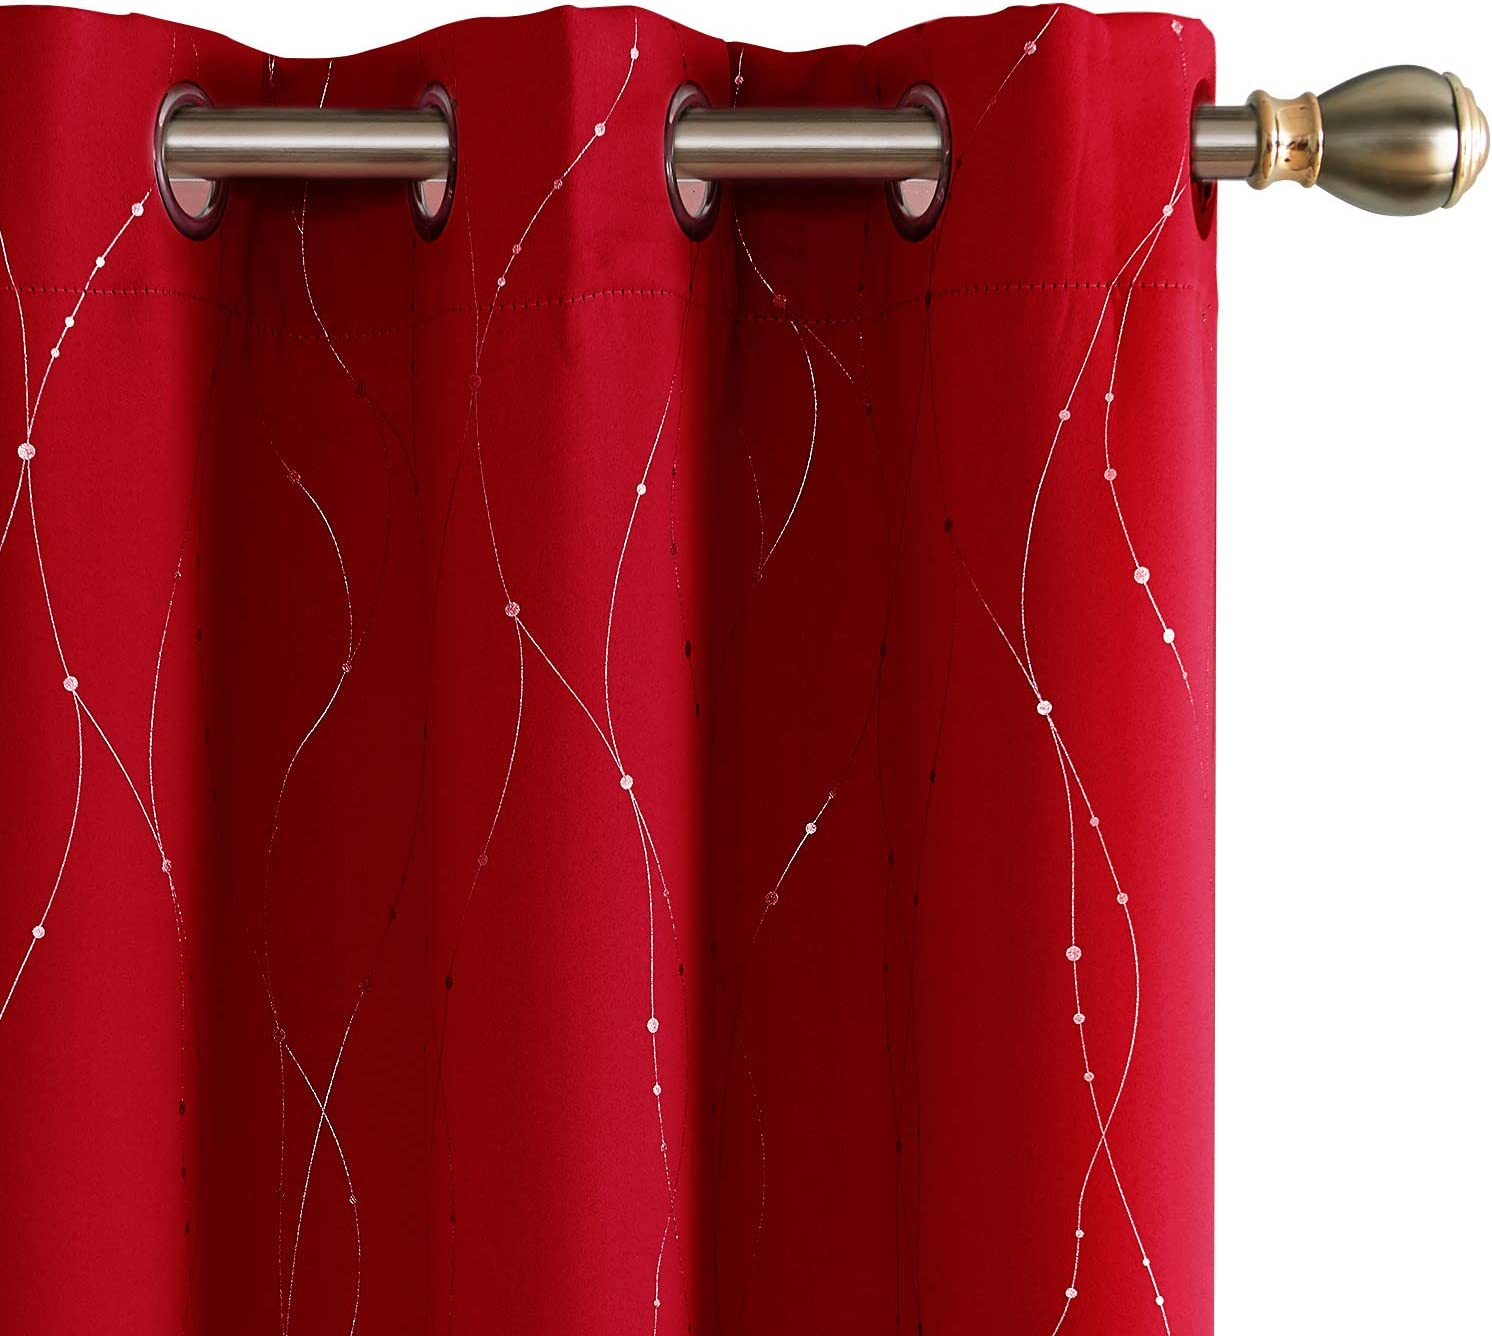 Deconovo Blackout Curtains Wave Line with Dots Foil Print Design Grommet Top Window Curtains for Bedroom 42 x 63 Inch Red 2 Panels